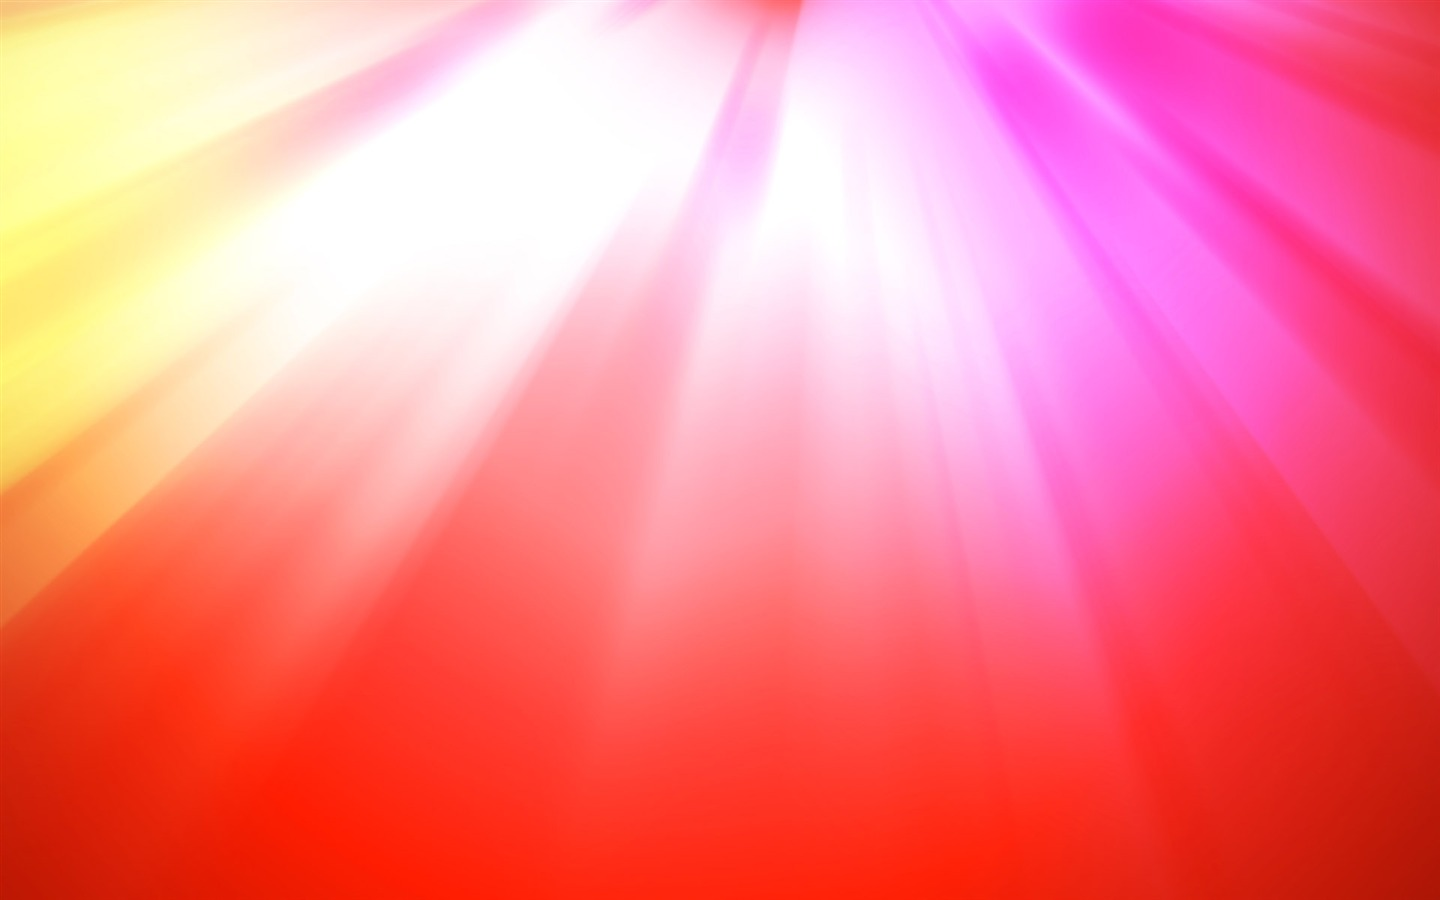 bright designs hd background - photo #22